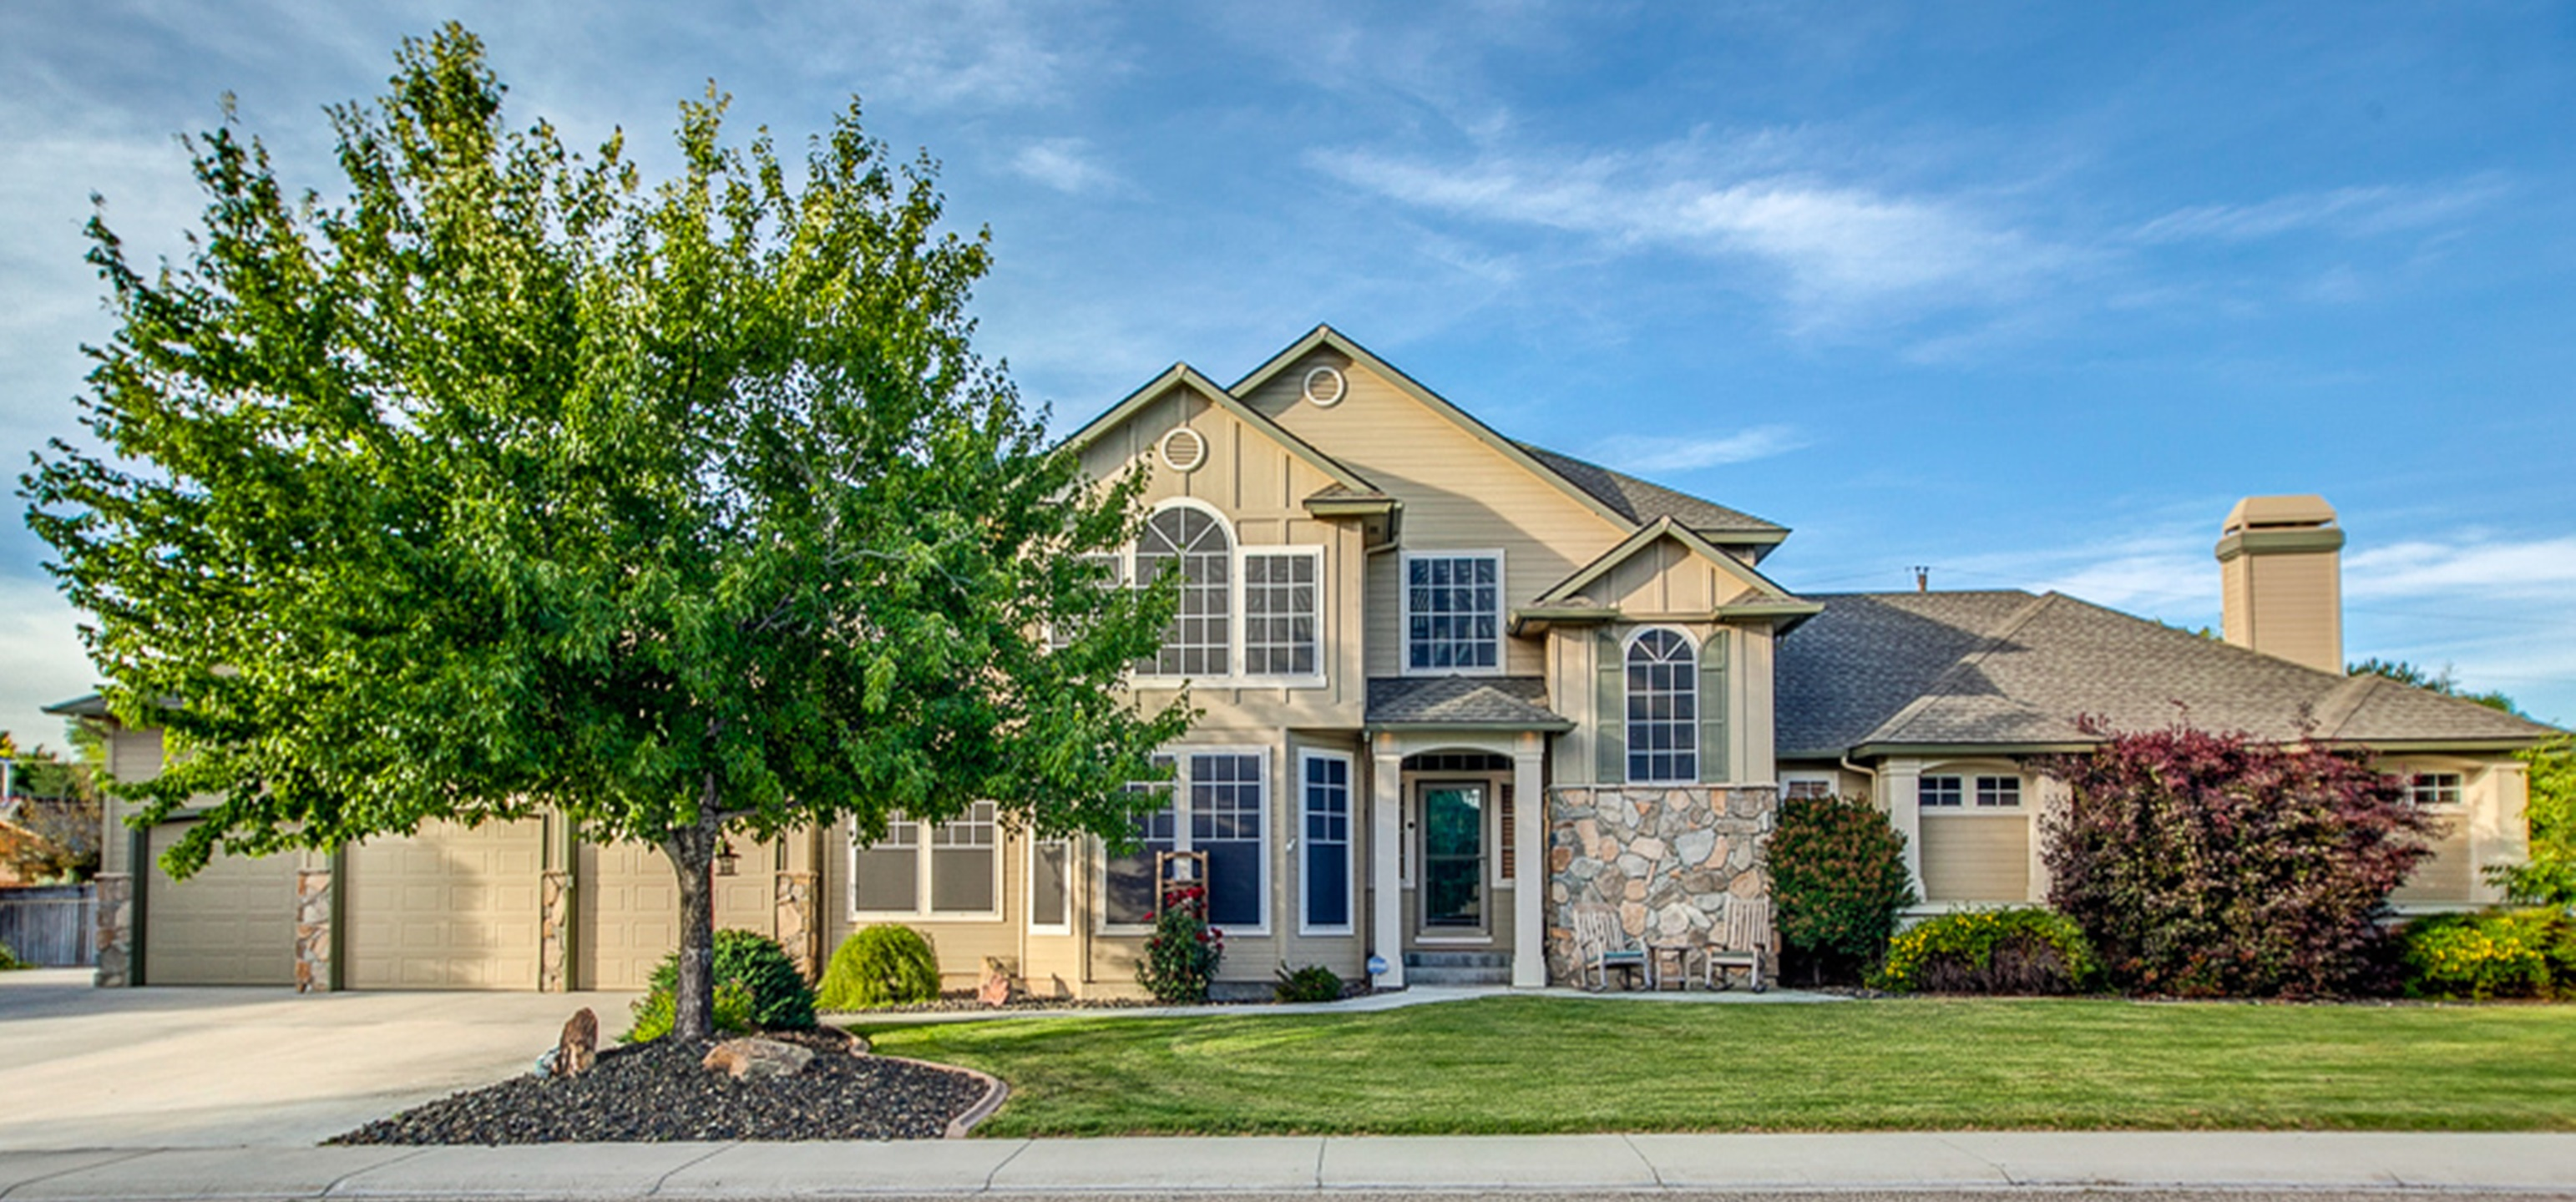 Exquisite House In Boise On Almost 1/2 Acre!